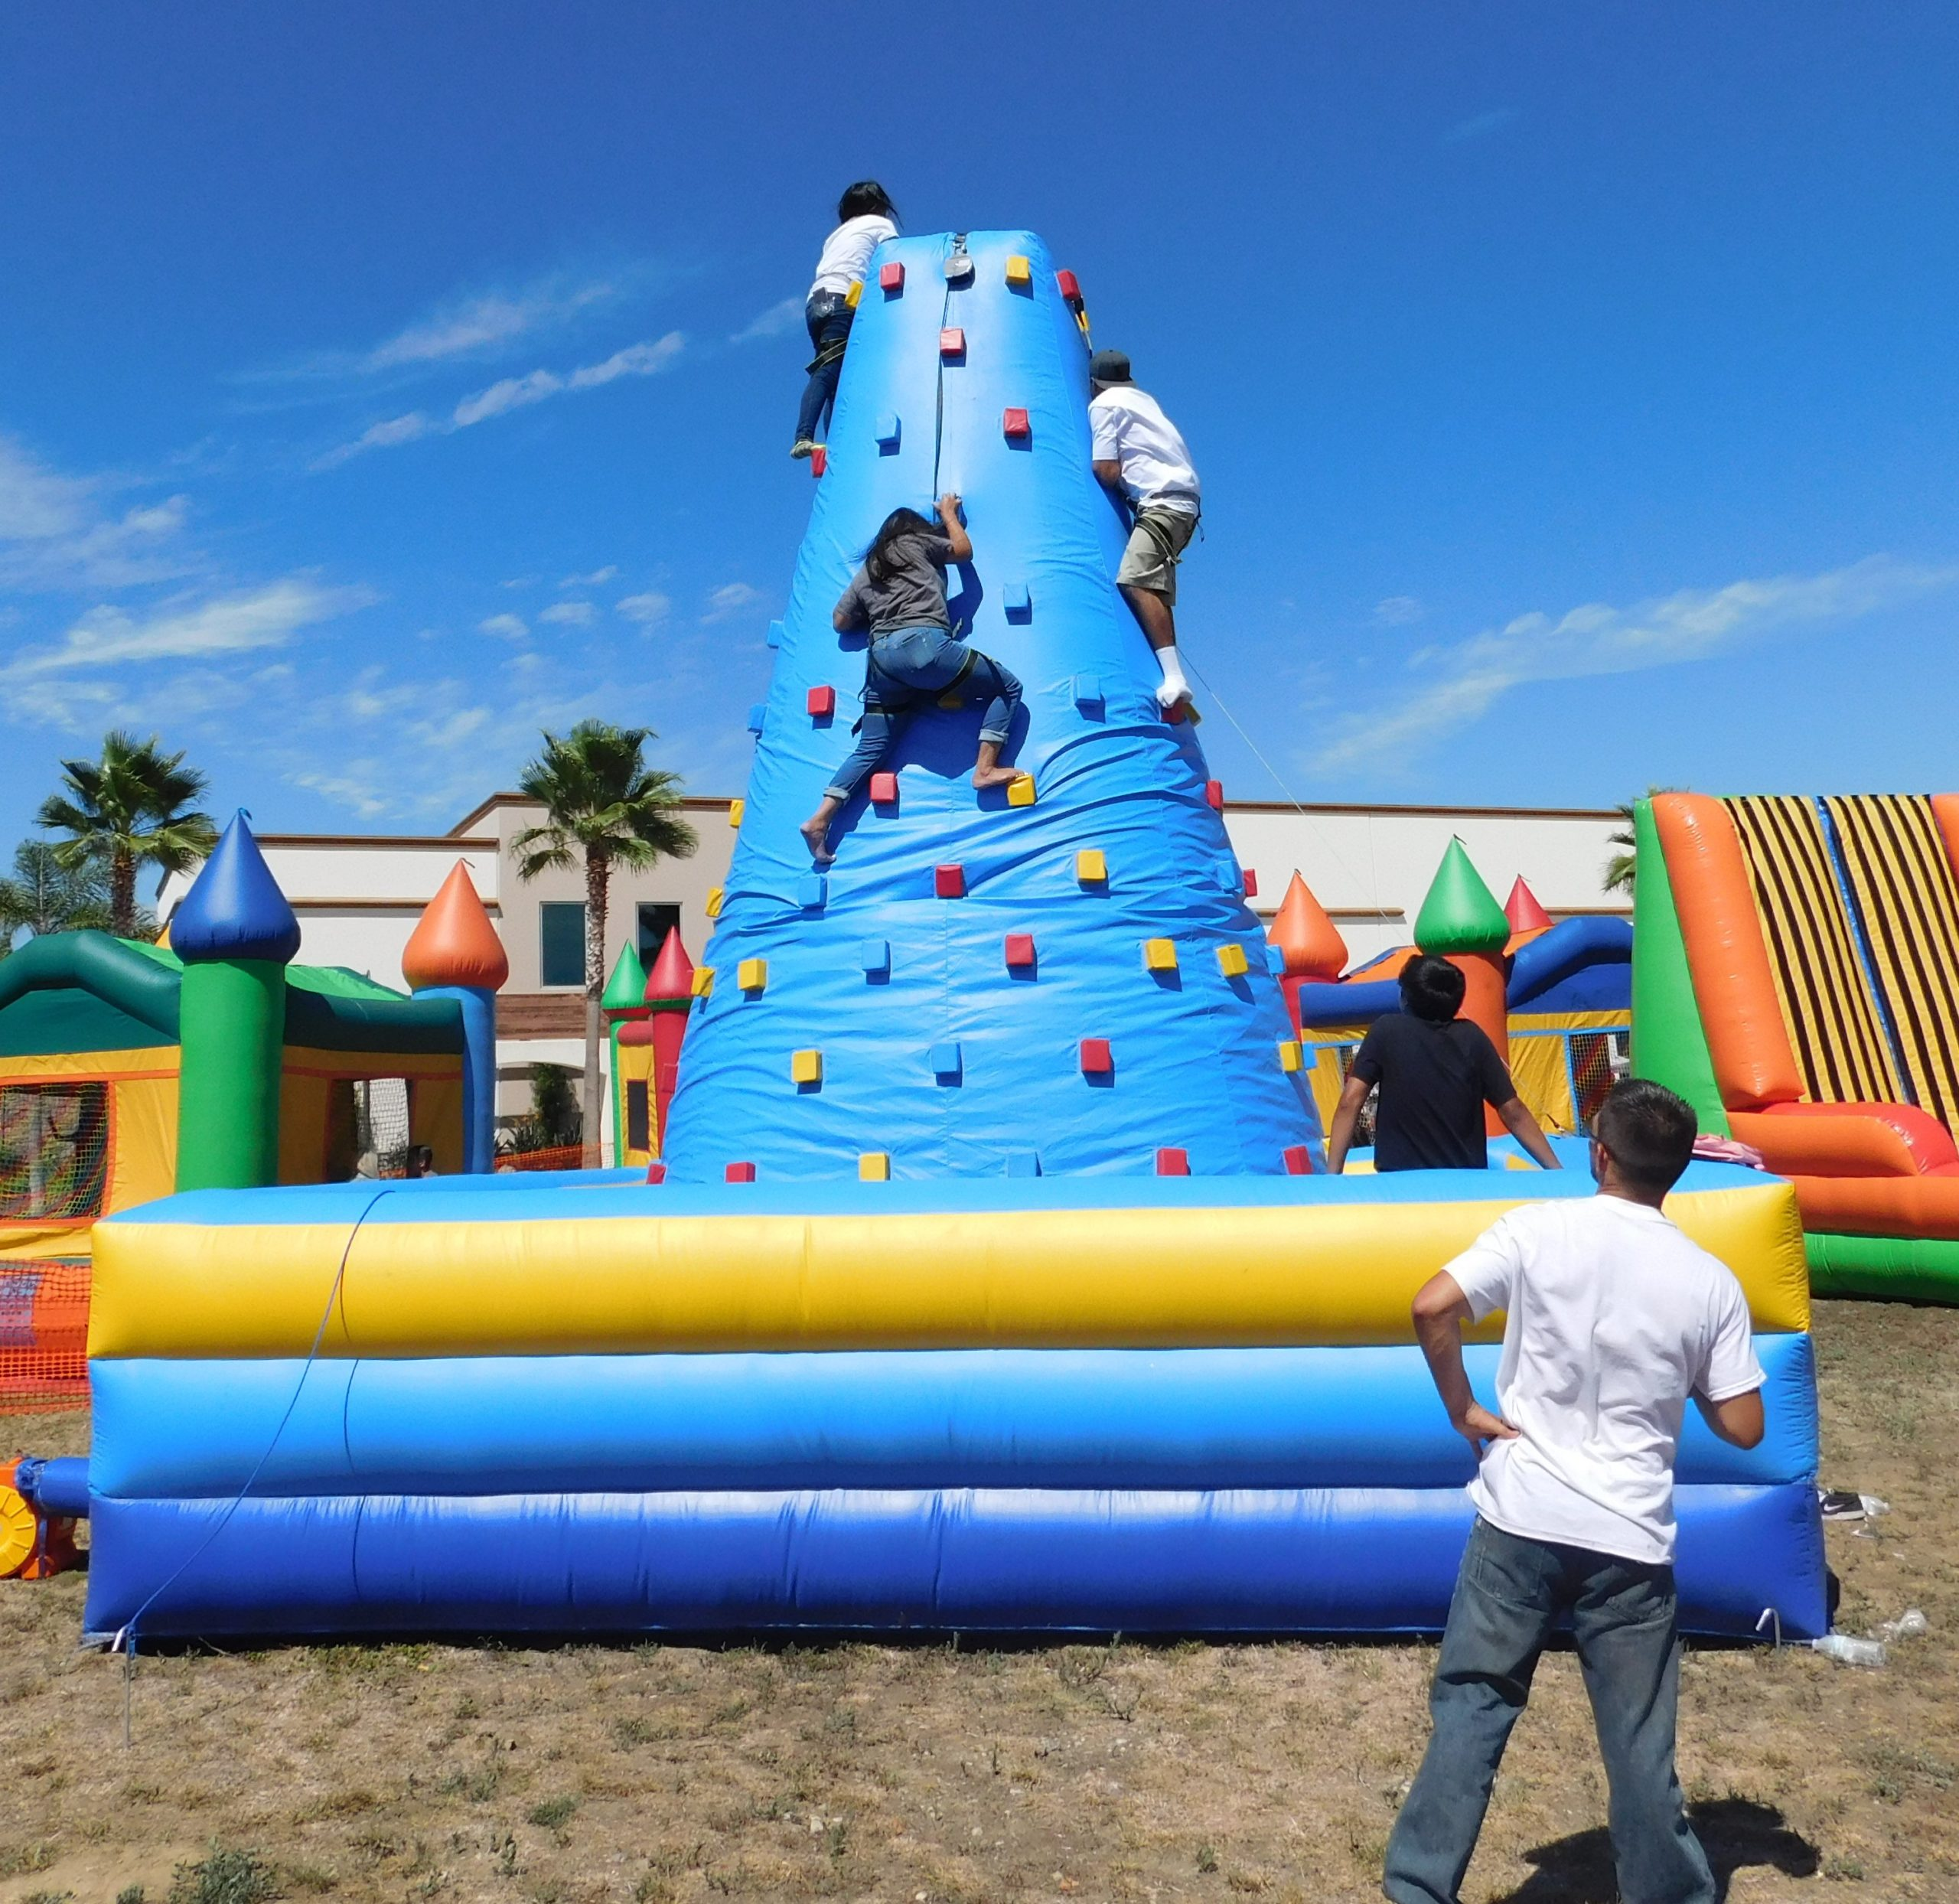 Inflatable Rock Wall with four sides